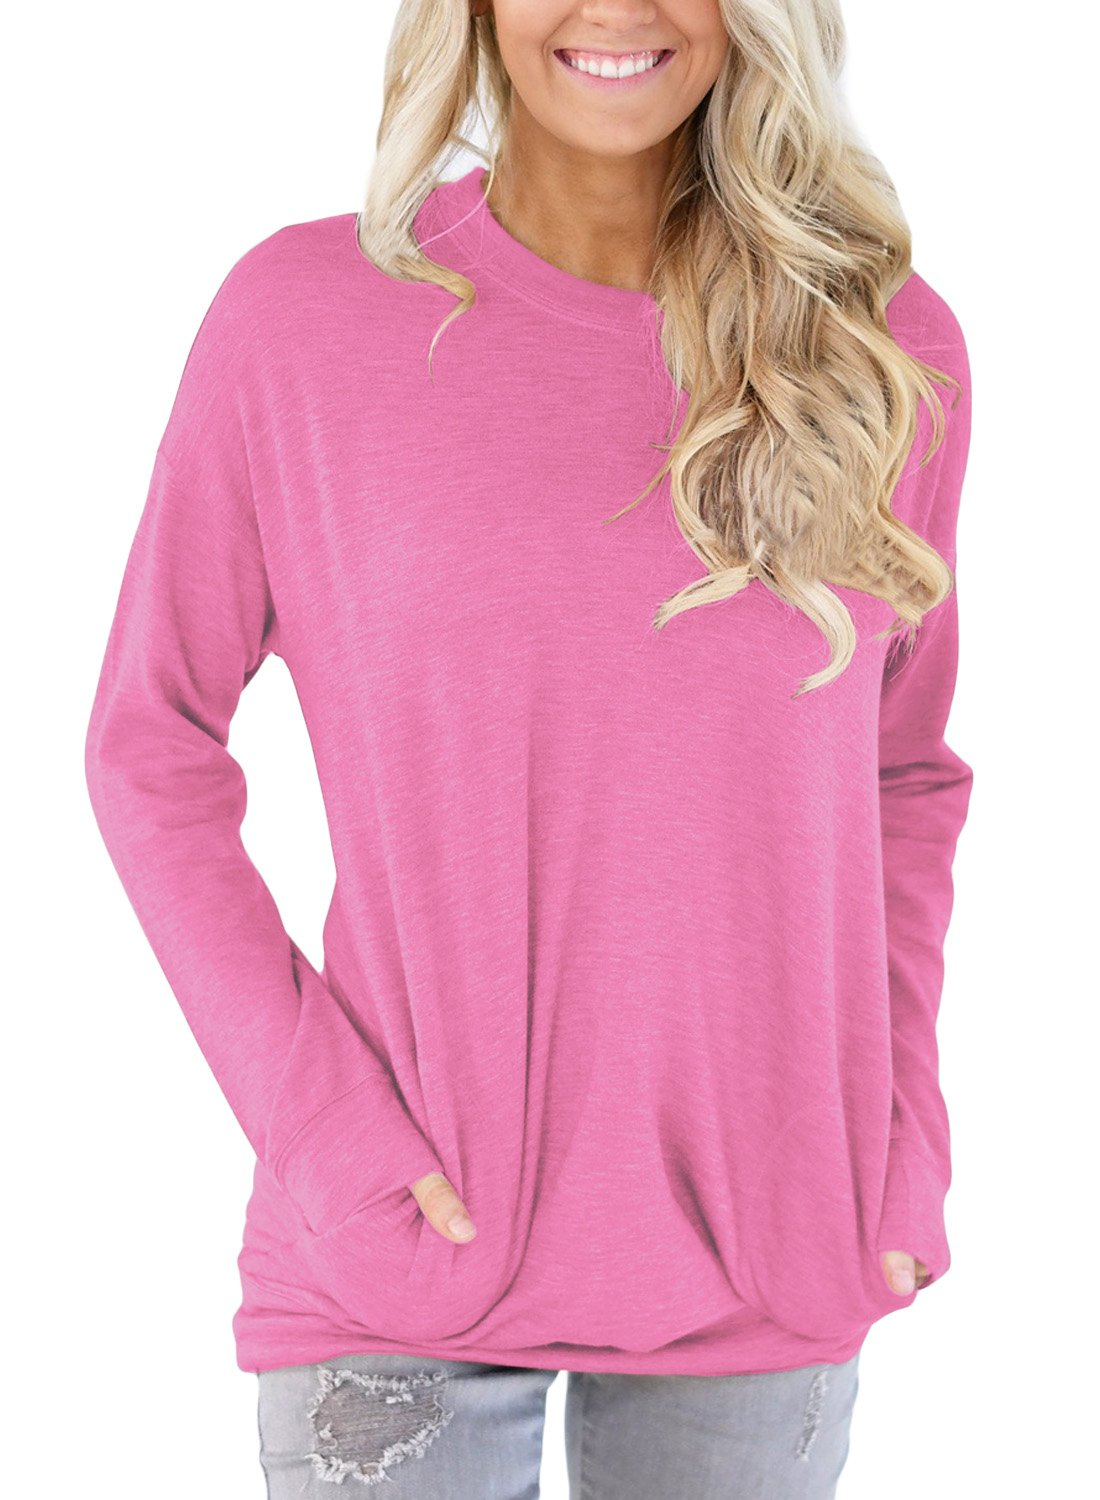 HOTAPEI Women Casual Long Sleeve Round Neck Sweatshirt Loose TShirt Womens Tunics Blouses Tops Pink Medium